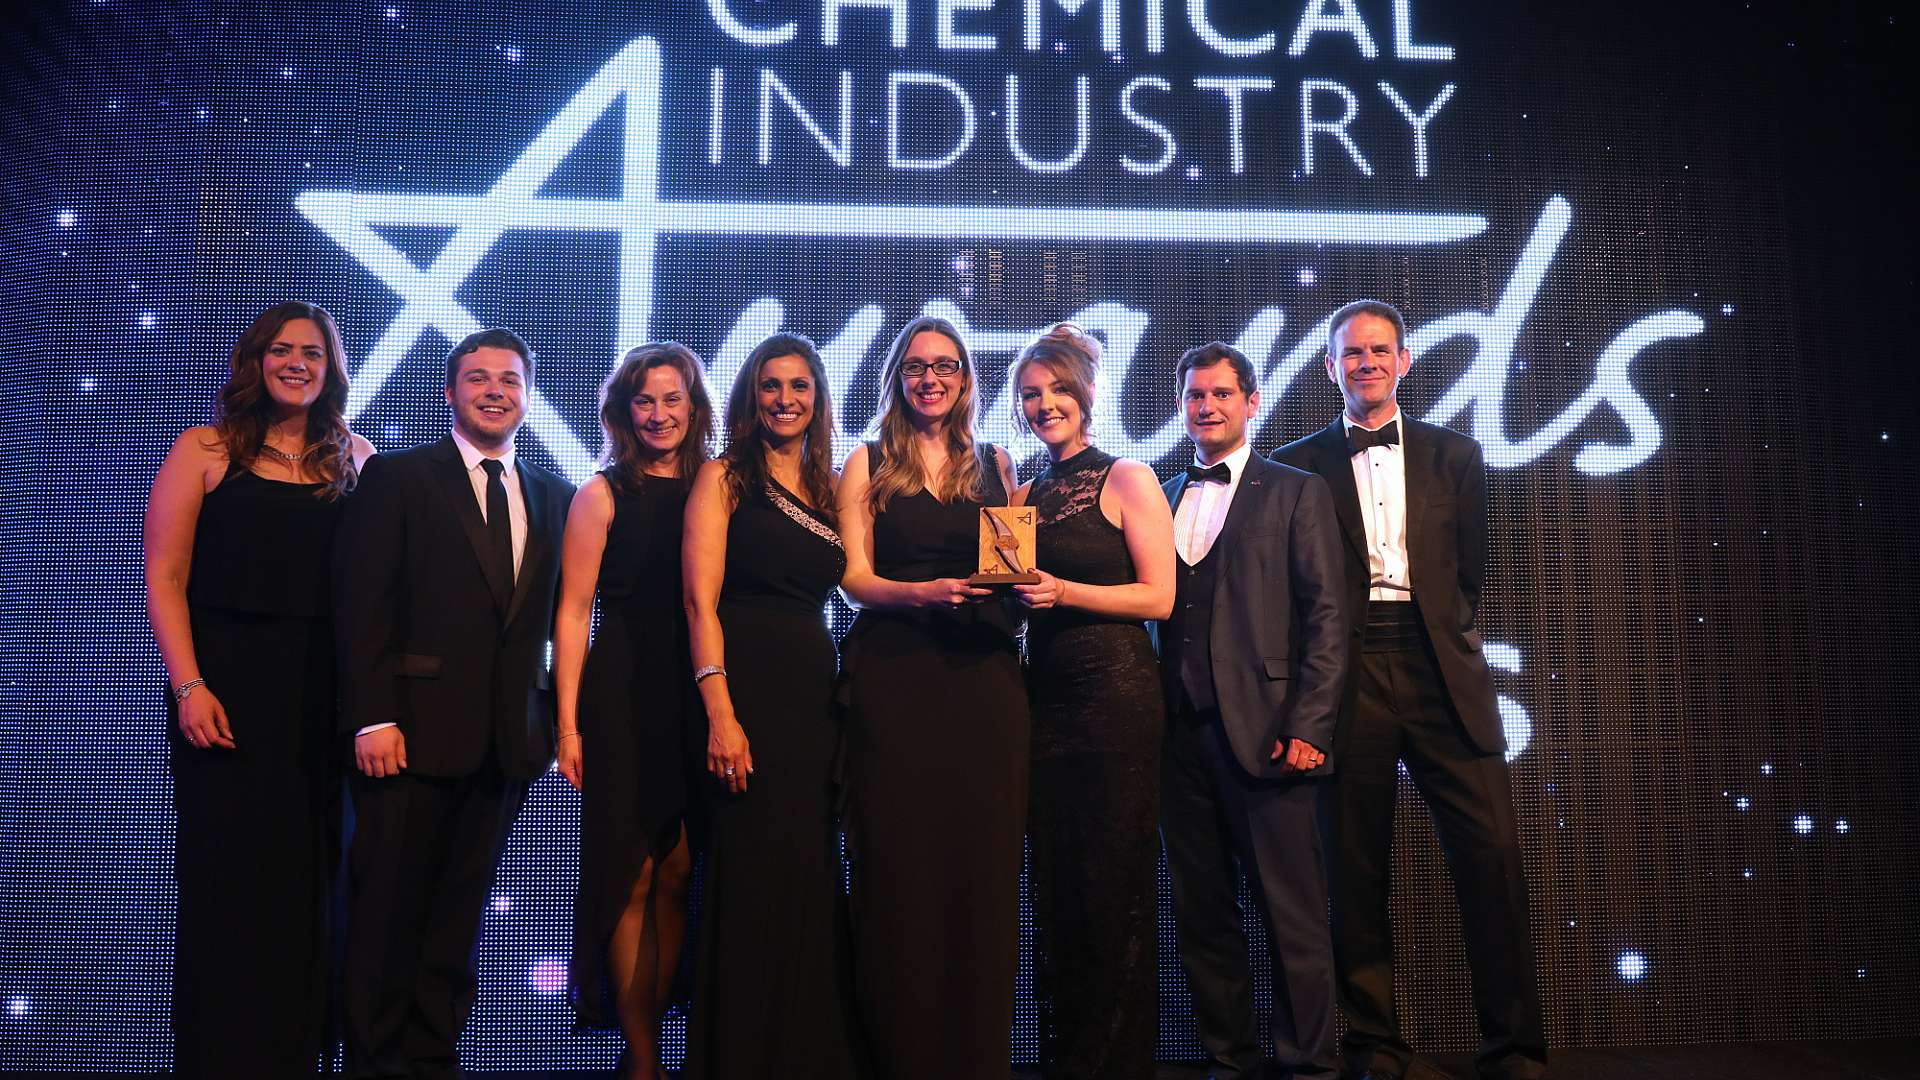 We were named Chemical Industry Service Provider of the Year at the Chemical Industries Association Awards, in Newcastle